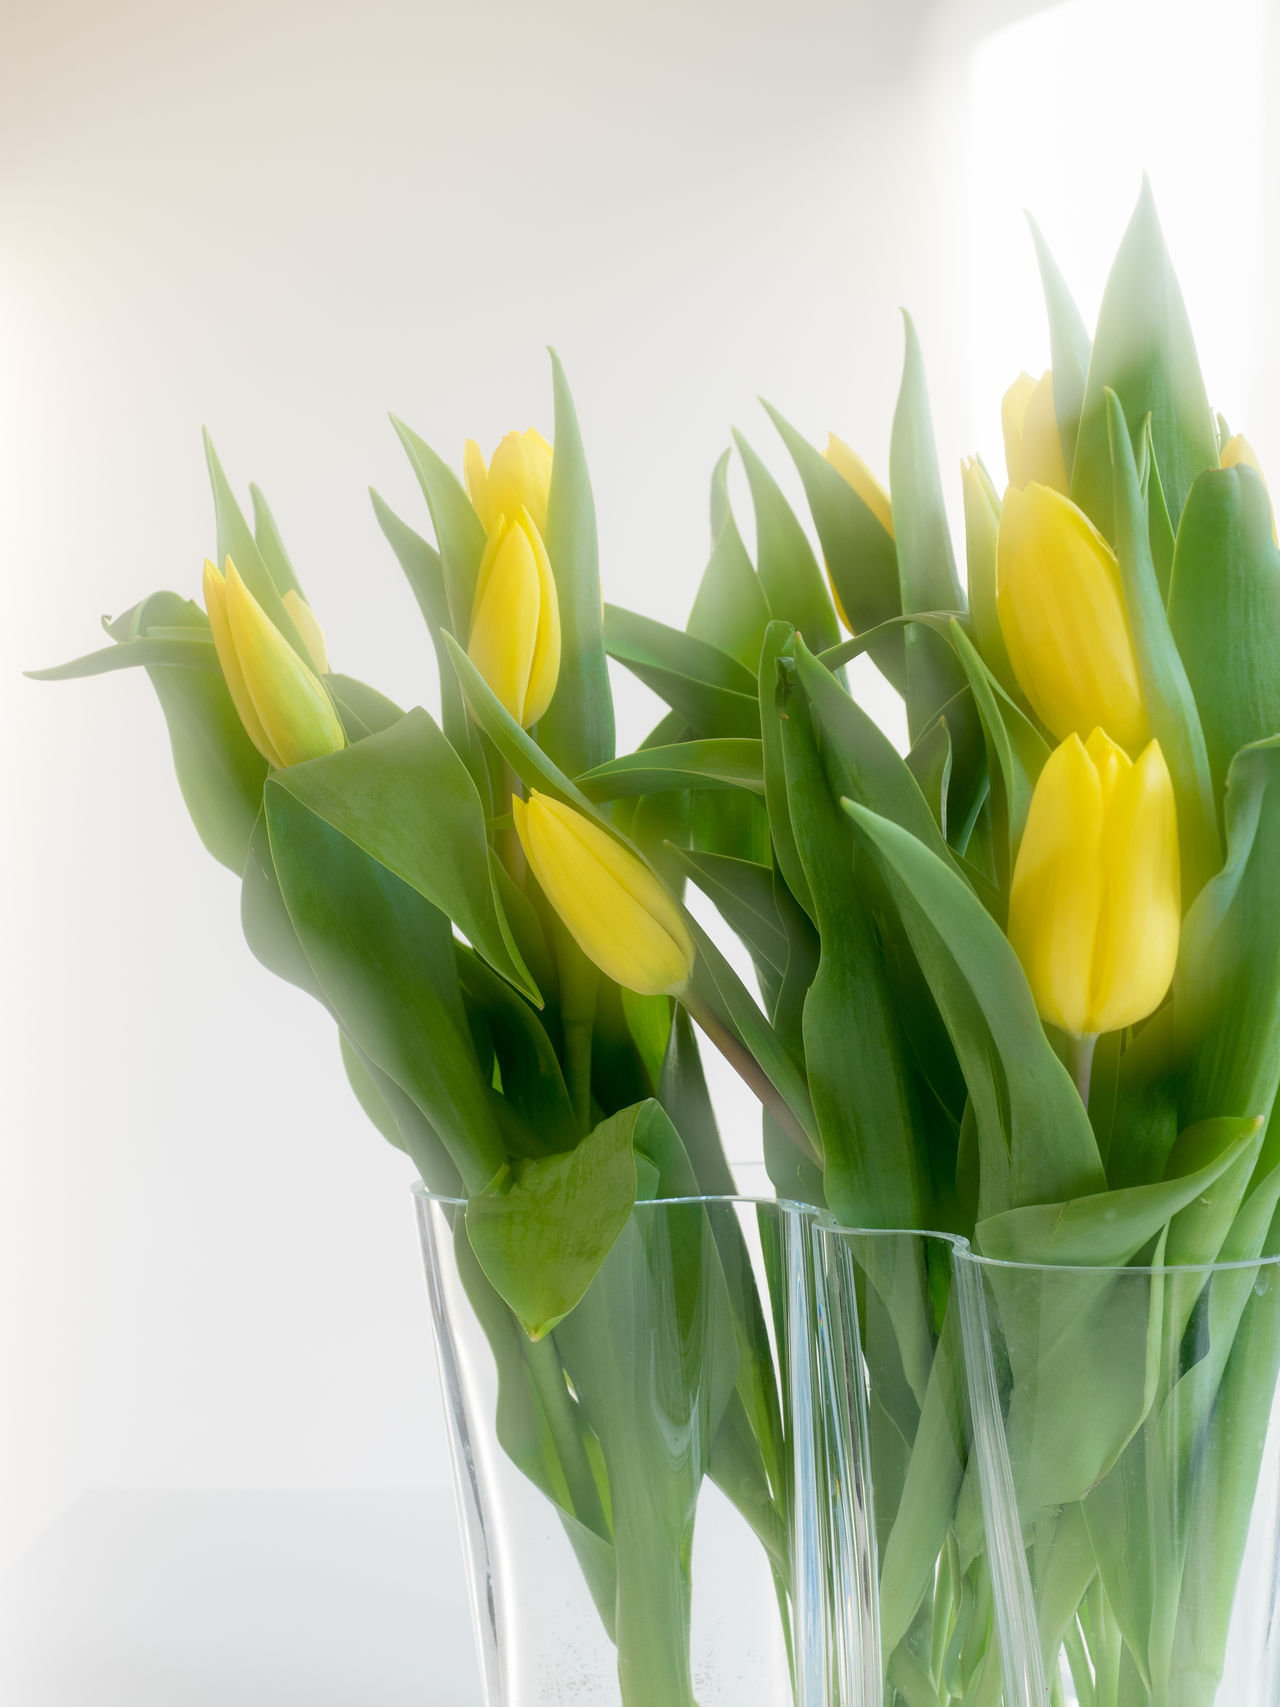 Yellow Tulips in a Glass Vase on White Background Close-up Flower Flower Head Freshness Green Color No People Spring Sunny Day Tulips White Background Yellow Color Yellow Flower